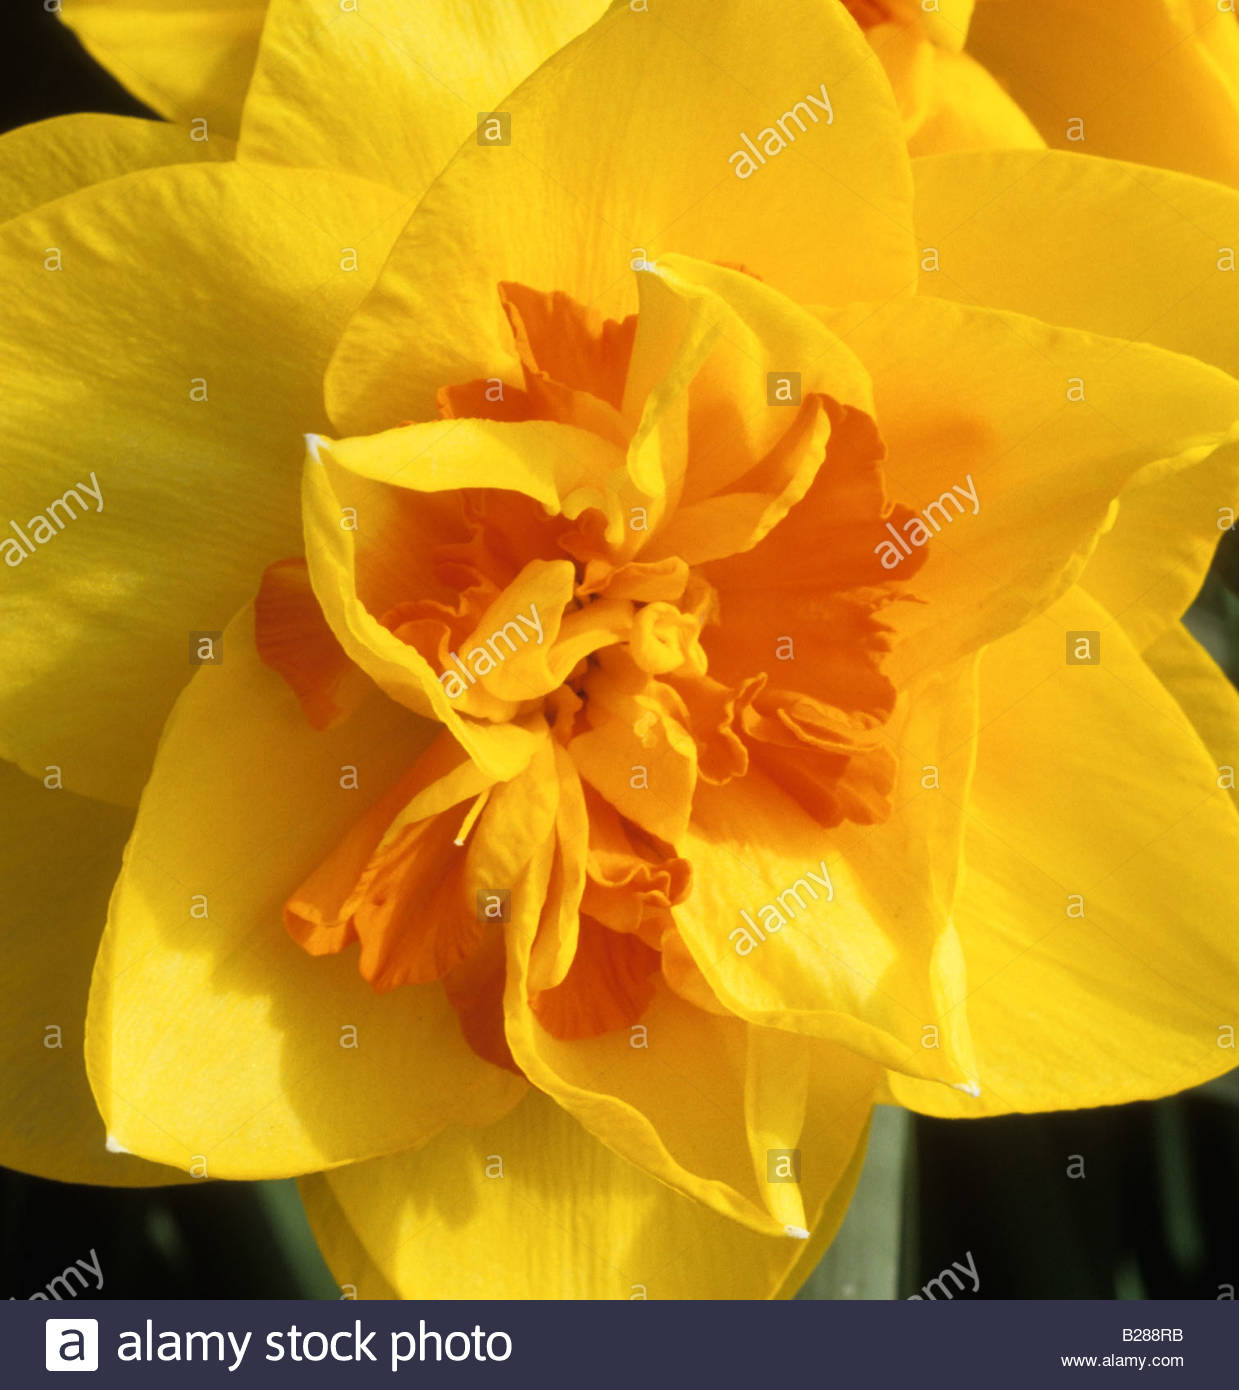 Daffodil narcissus tamar fire yellow spring flower daffodils flowers daffodil narcissus tamar fire yellow spring flower daffodils flowers mightylinksfo